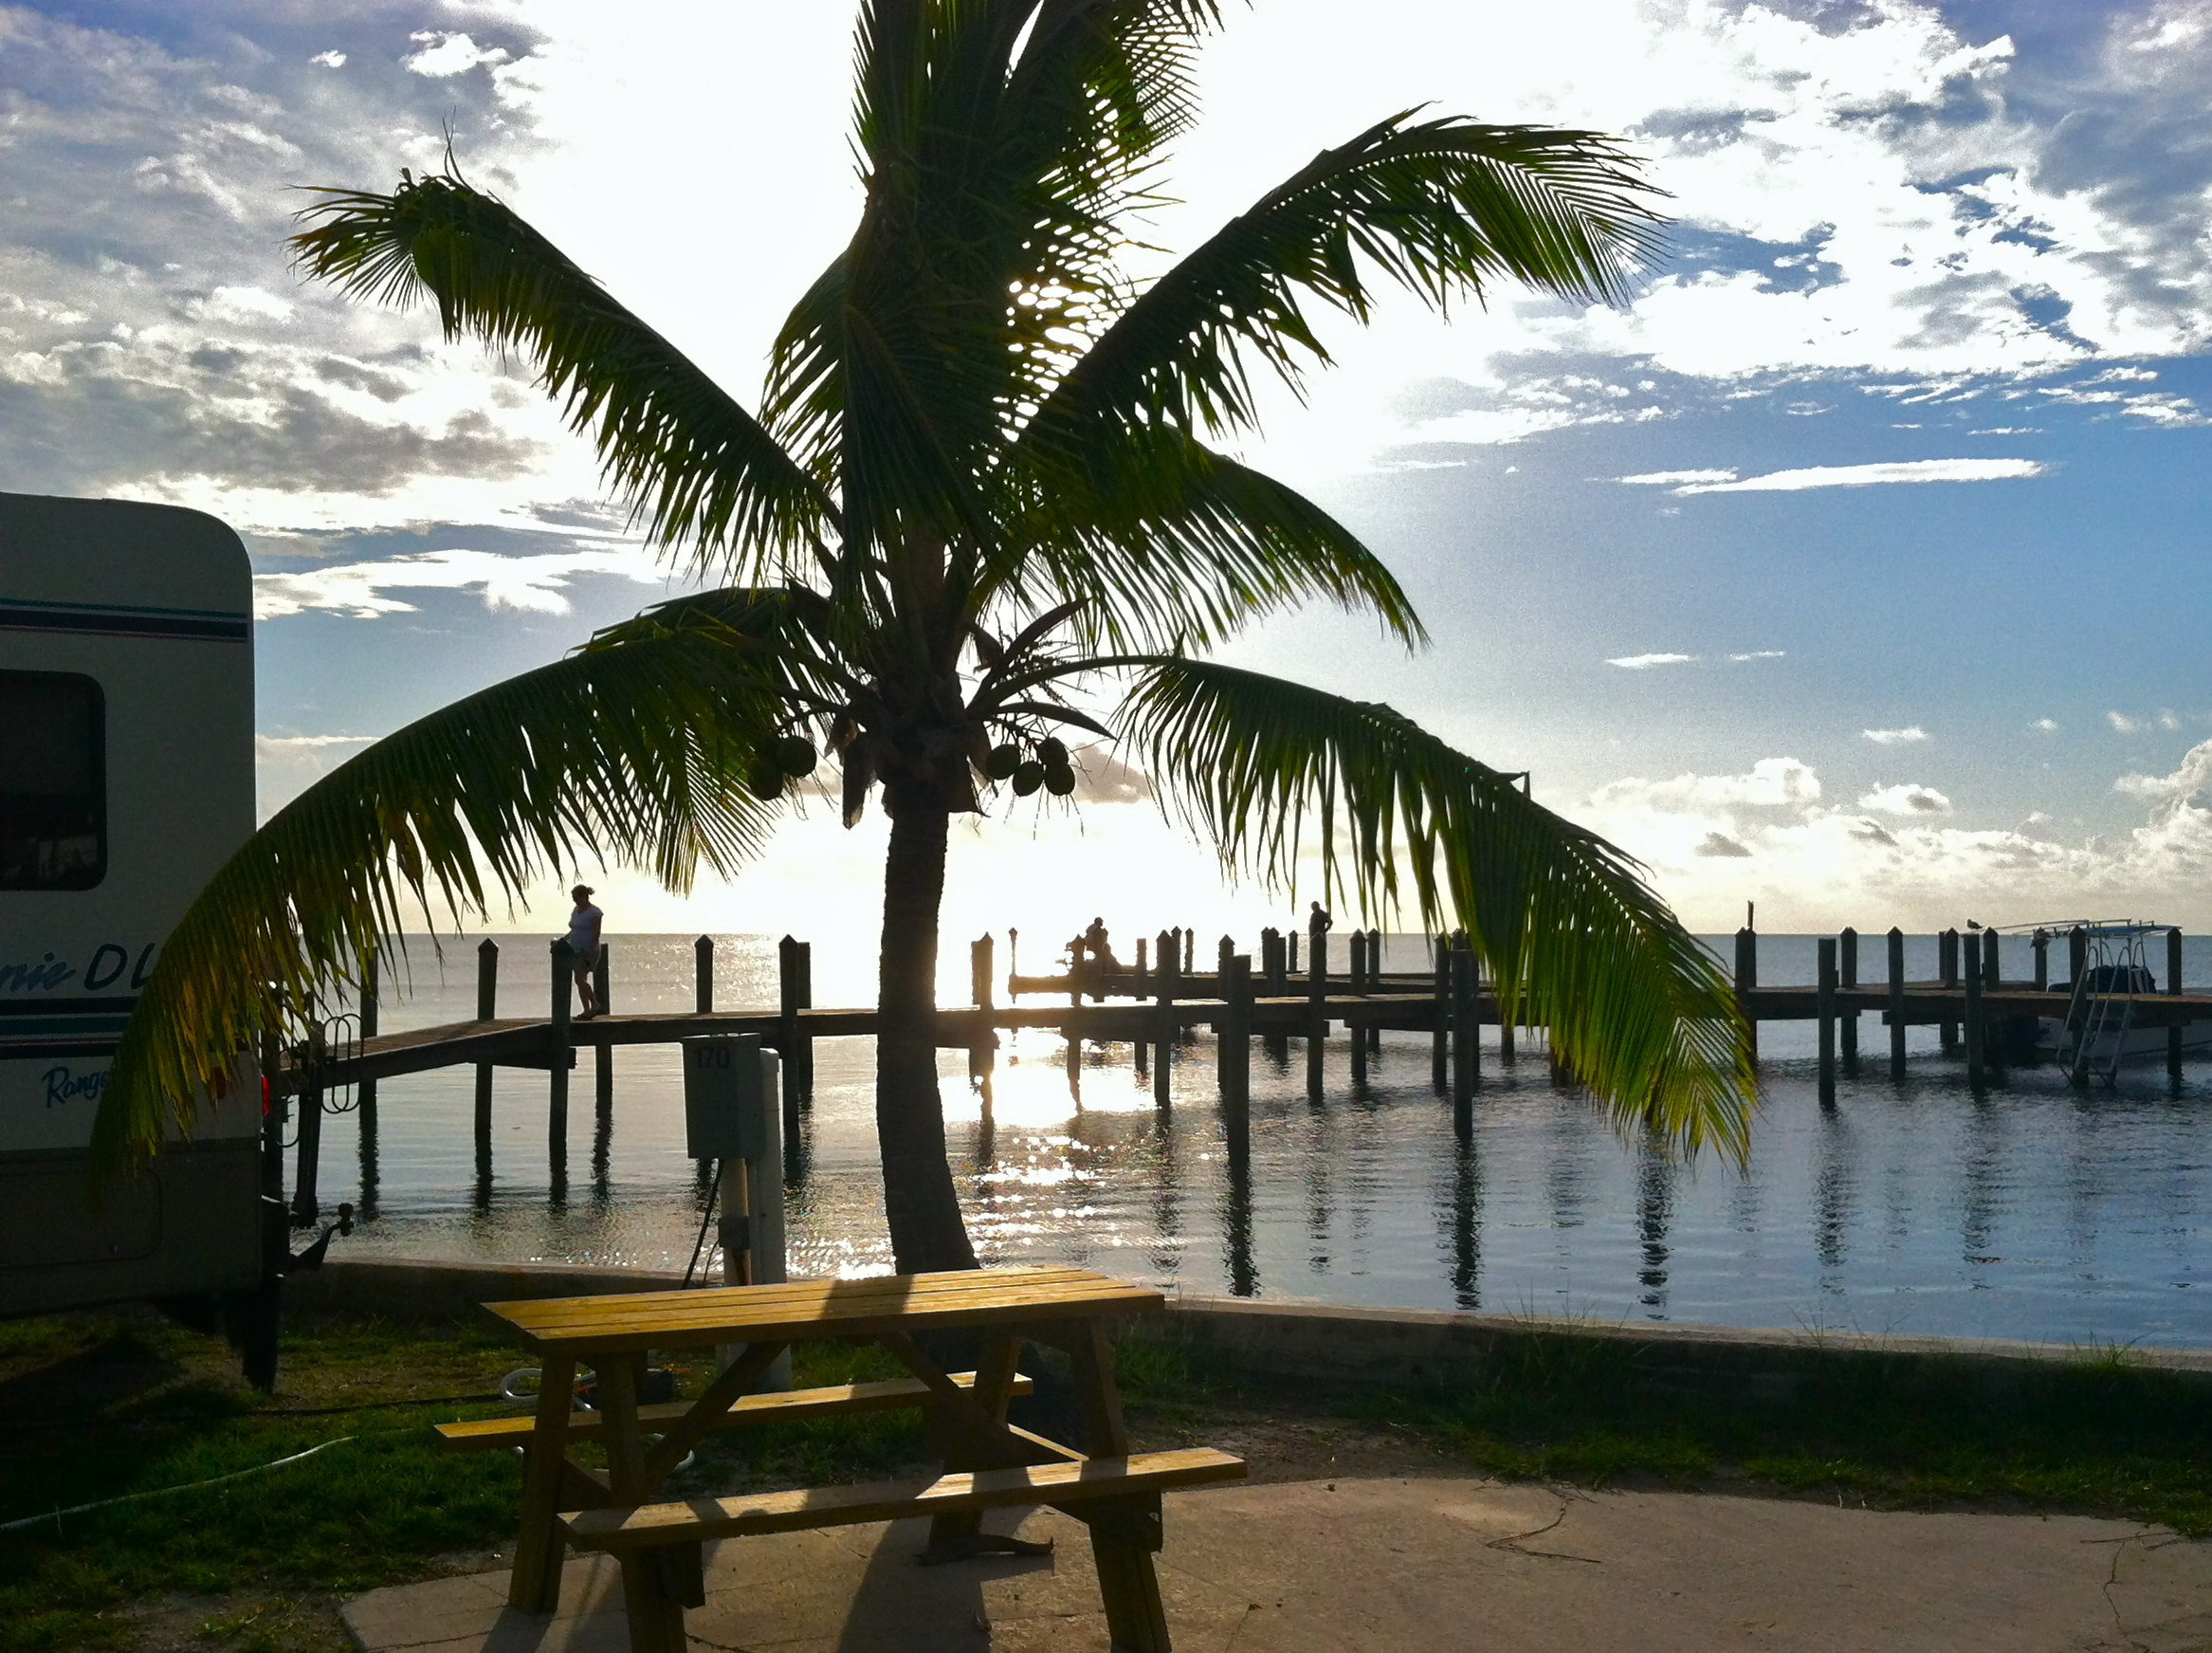 The sun hangs over the horizon of an RV park with a palm tree in the foreground and an angler standing on a pier.